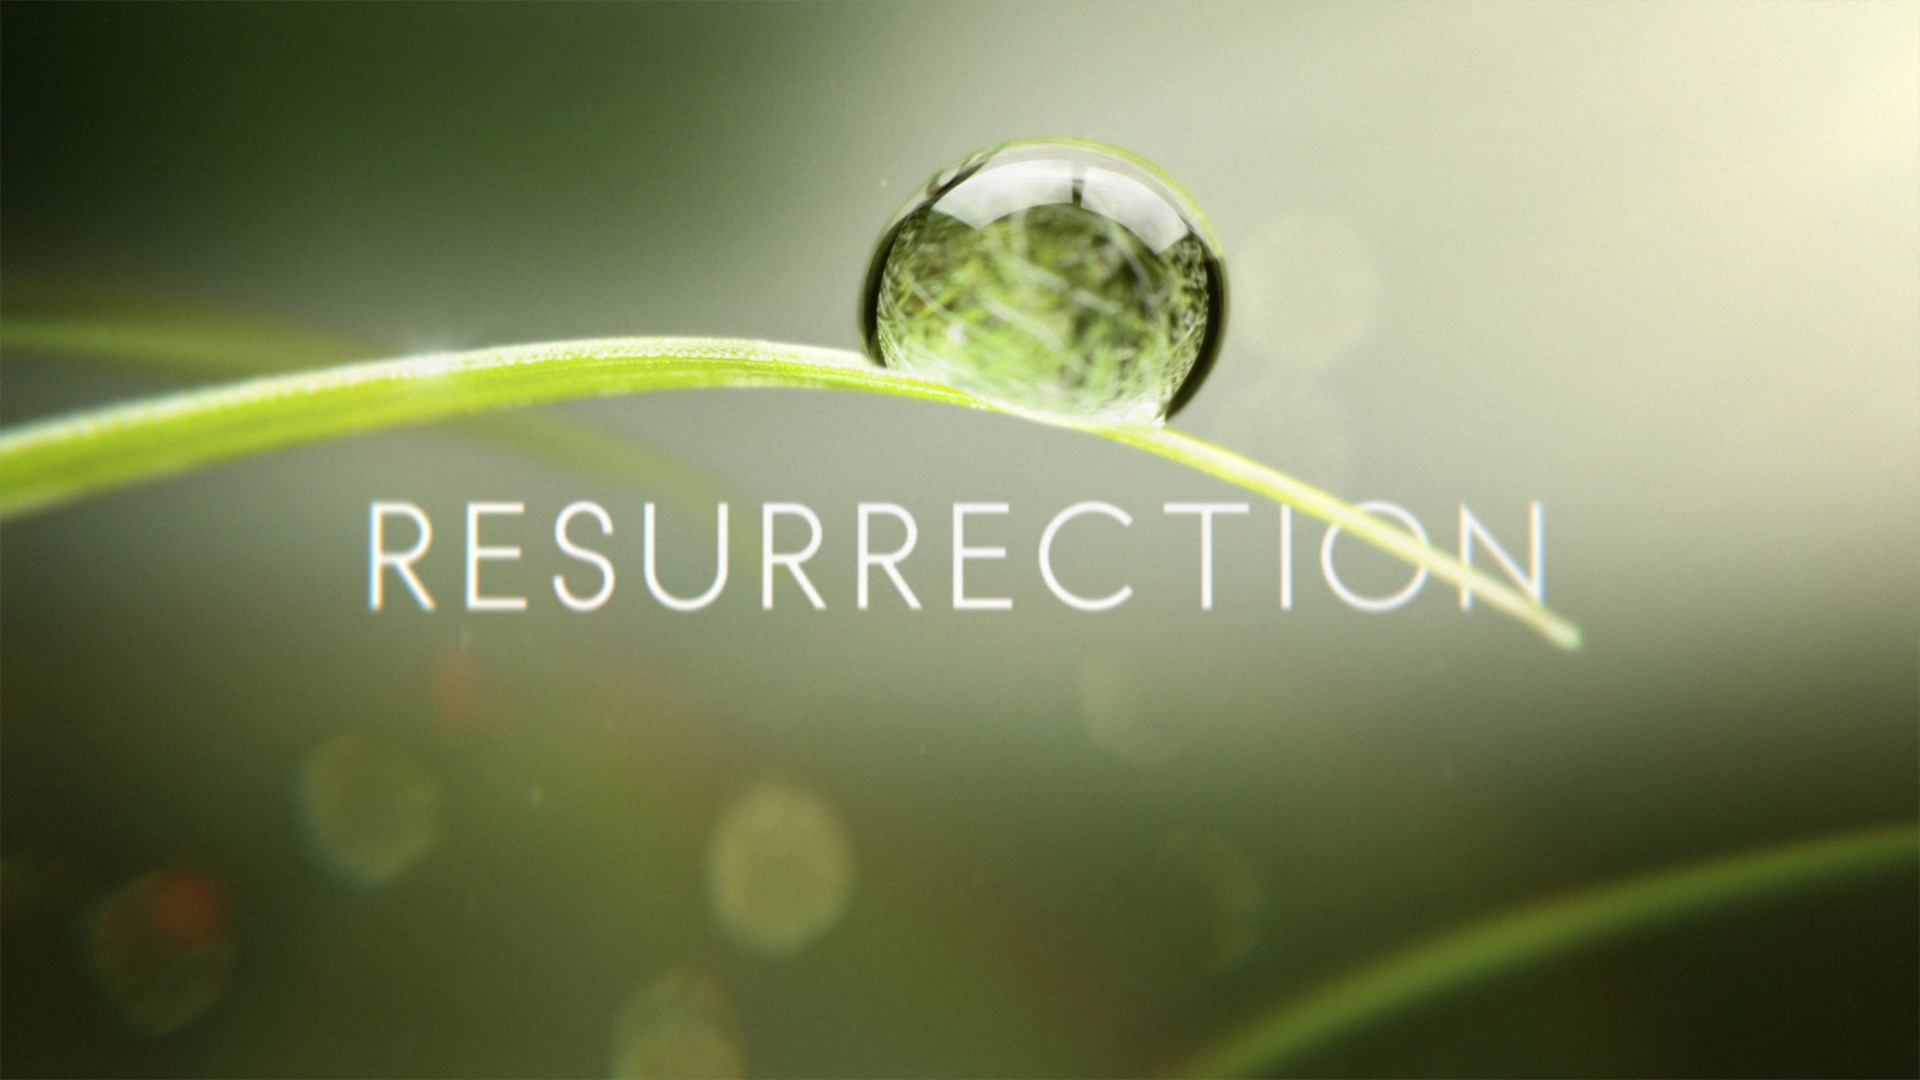 resurrection at the sound of the Trumpet